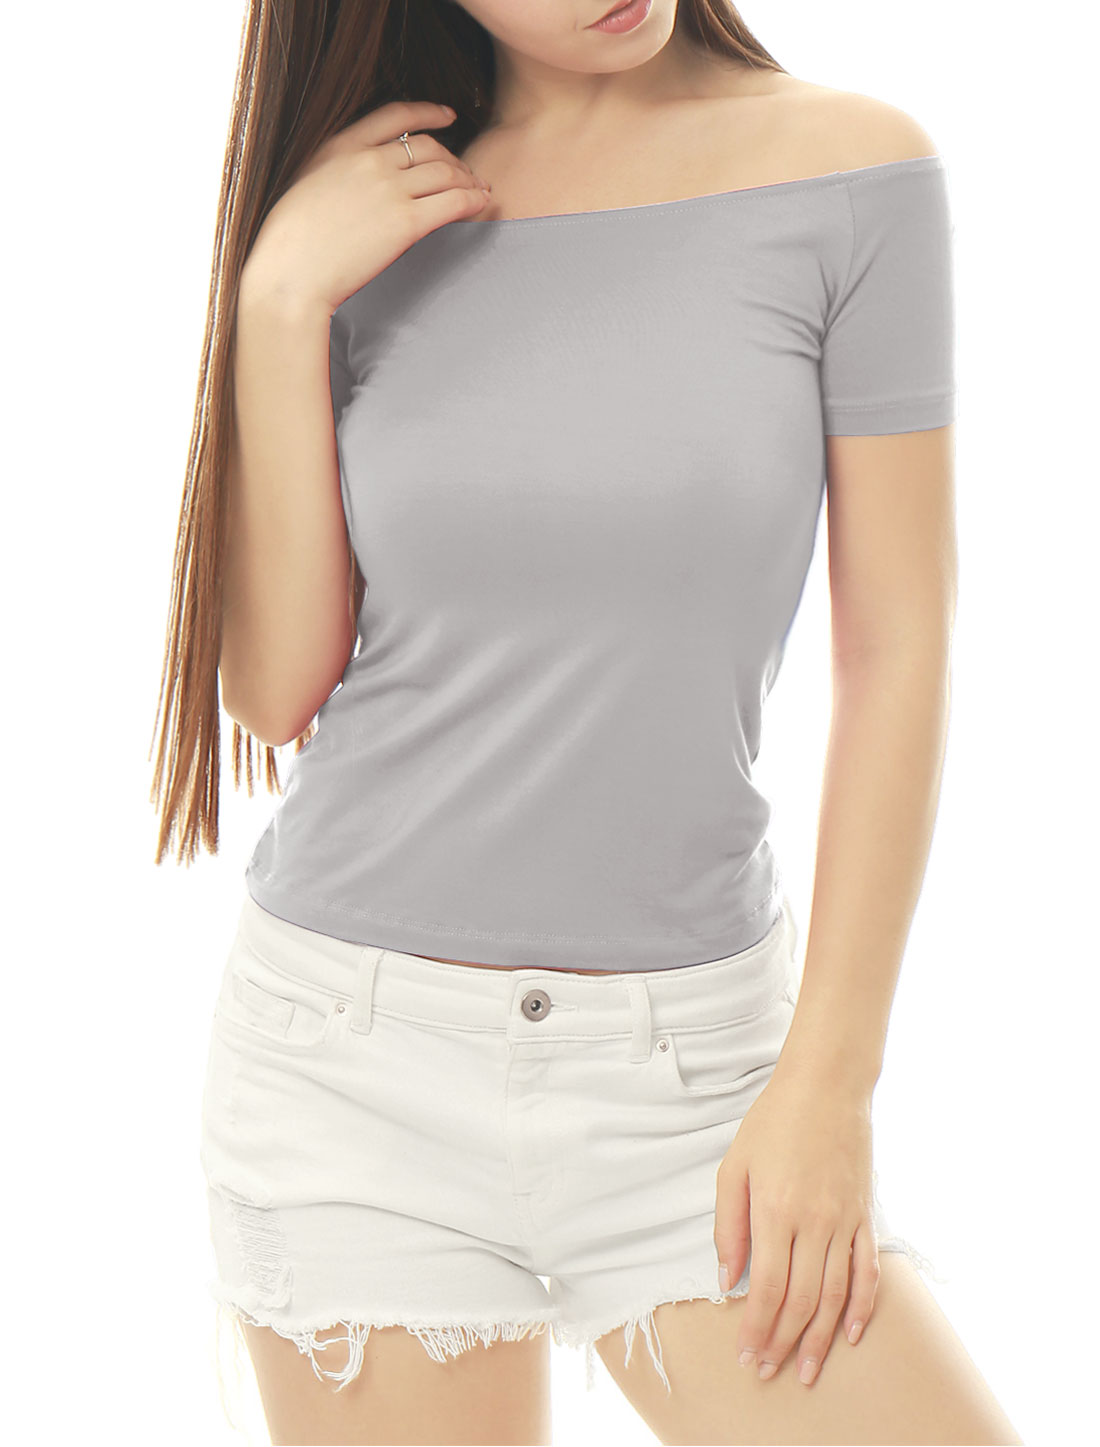 Women Short Sleeves Slim Fit Off the Shoulder Top Gray XL